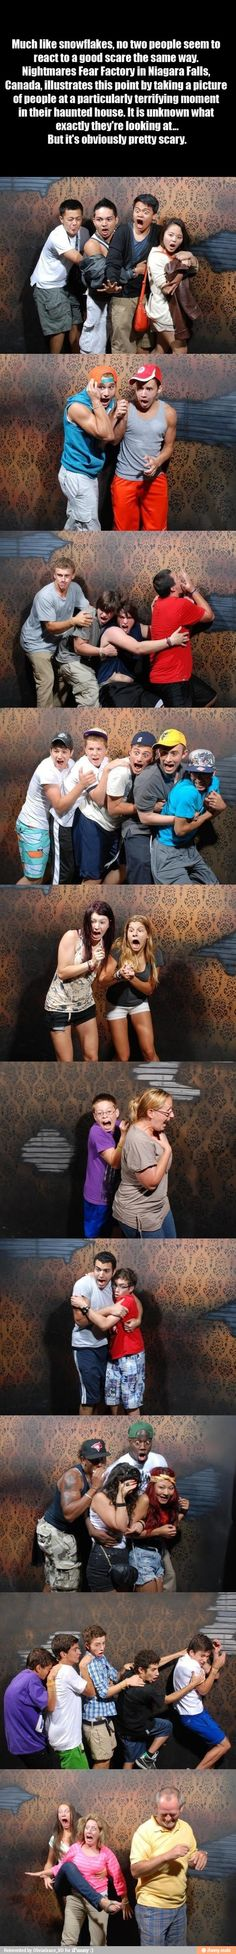 Omg! So funny!! This place is truly scary and I'm so glad there is not a picture of me when I went through!! #nightmares